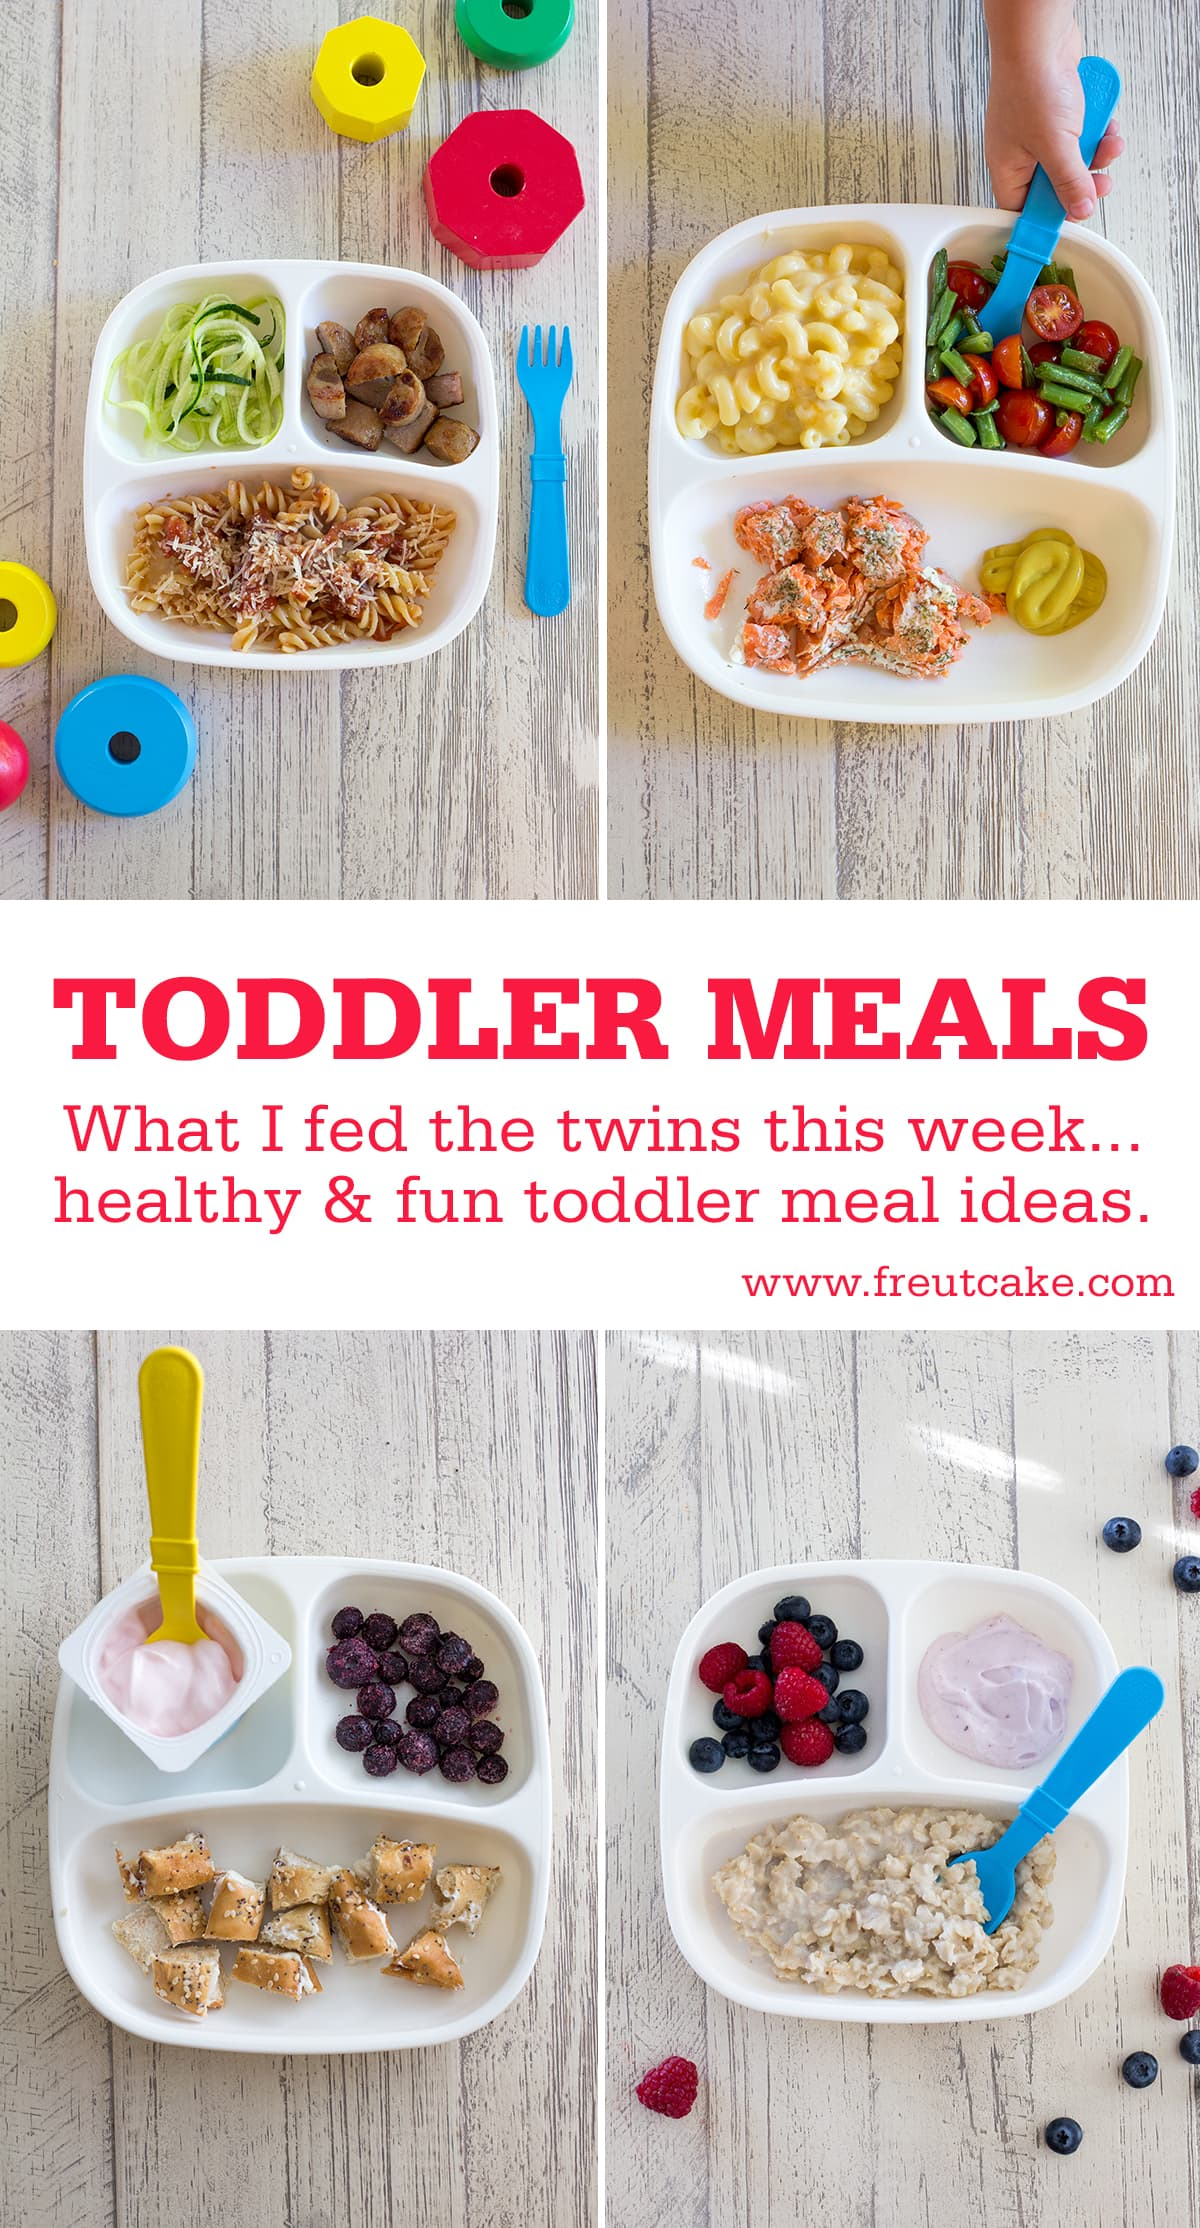 A weeks worth of healthy and real toddler meals that I fed the twins this week including dinner ideas for the whole family!